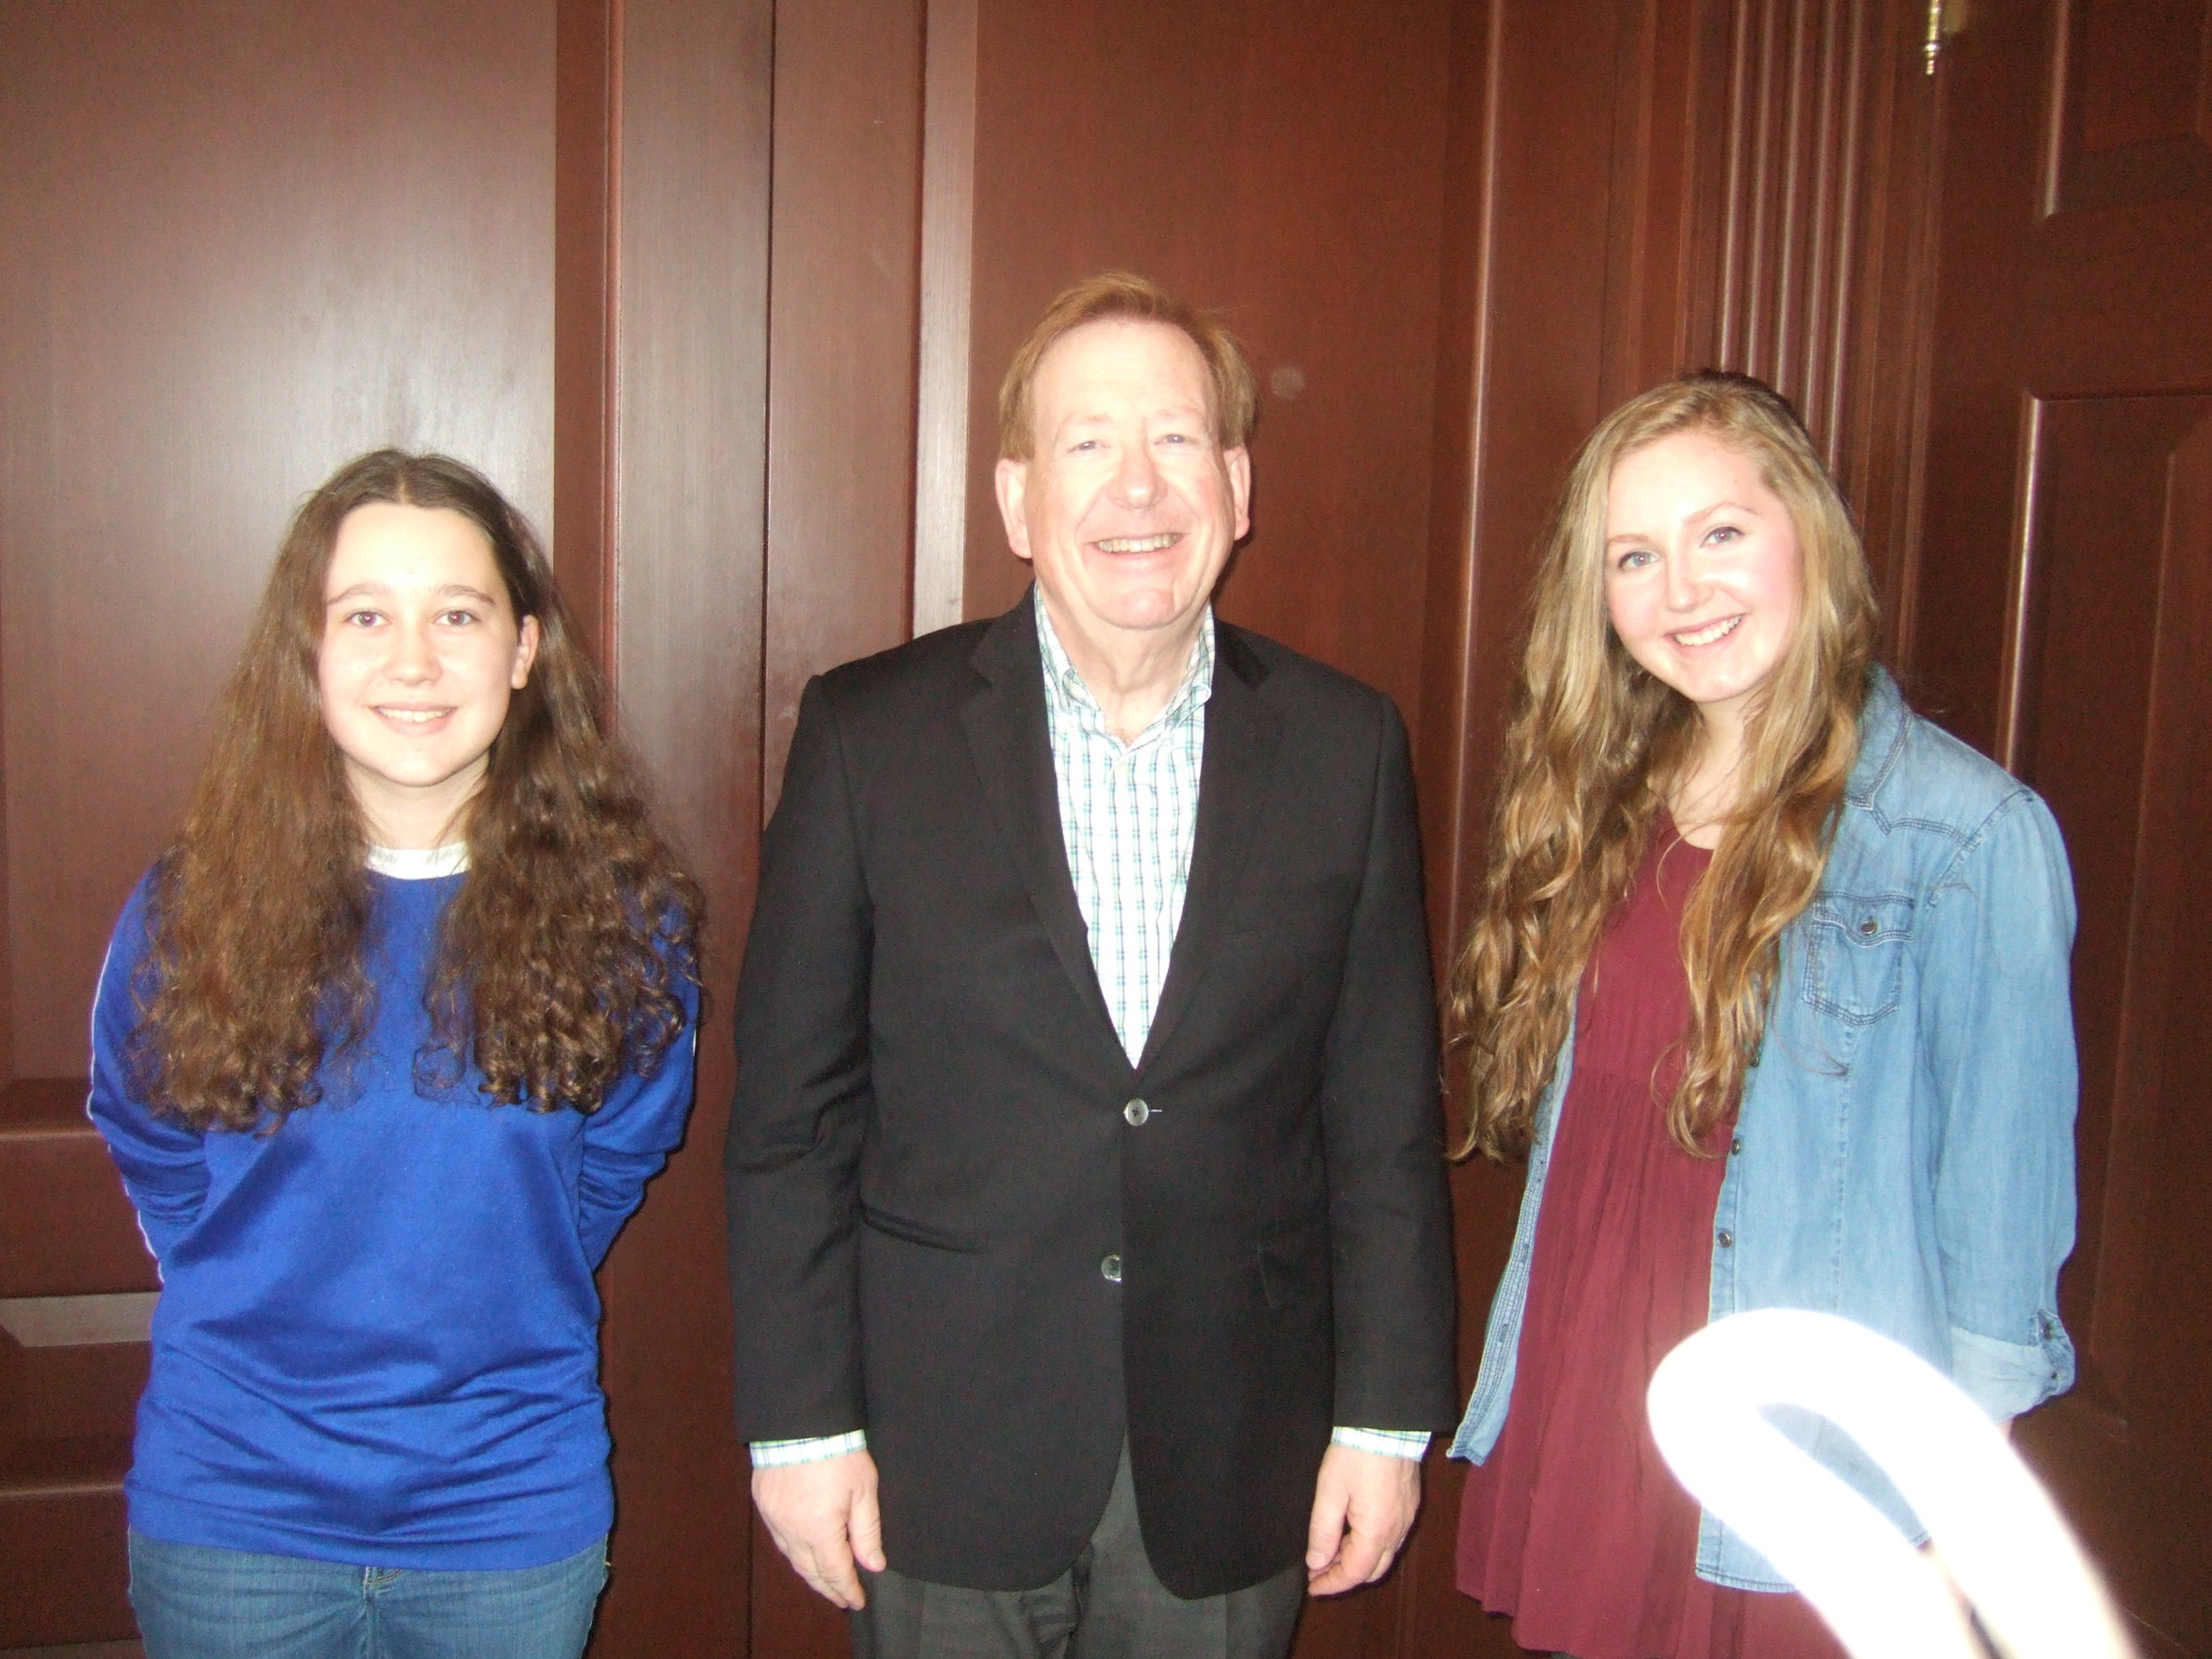 Alex Workman (left) and Maddie Adkins (right) discuss the Climate Resilience and Recovery Resolution with Mayor Jim Brainard.